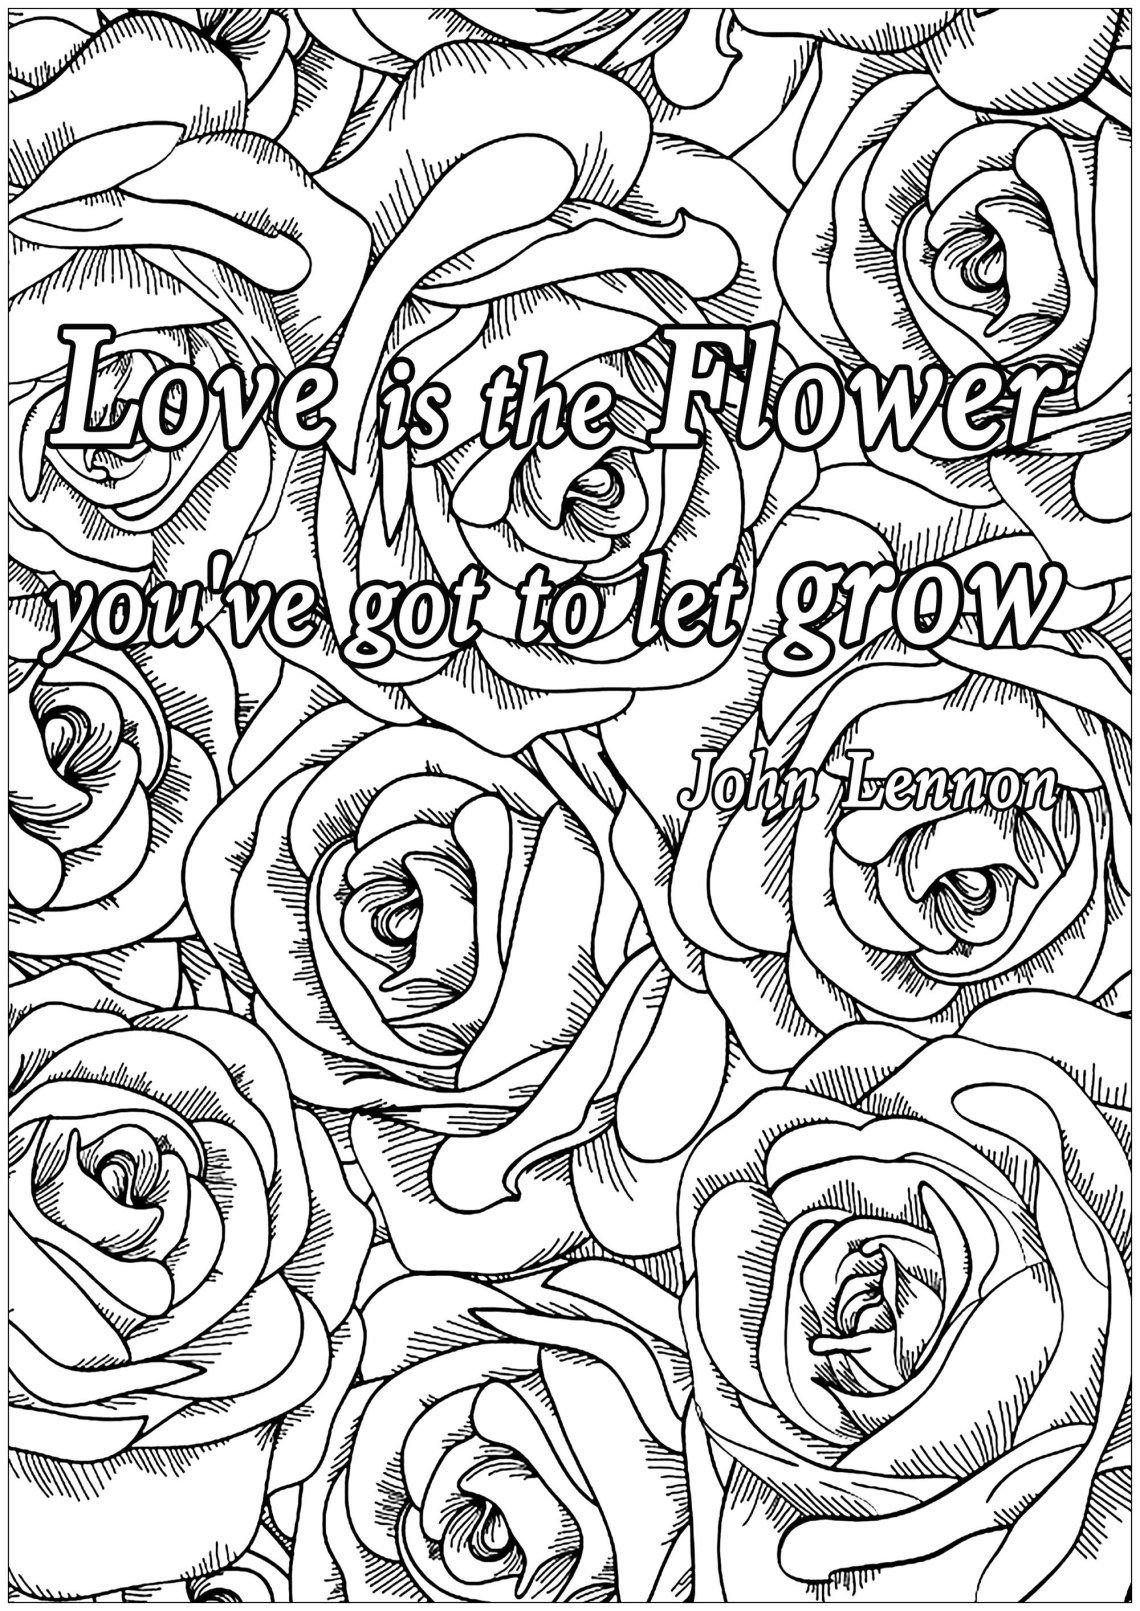 Love is the flower - Quotes Adult Coloring Pages | printable colouring pages quotes